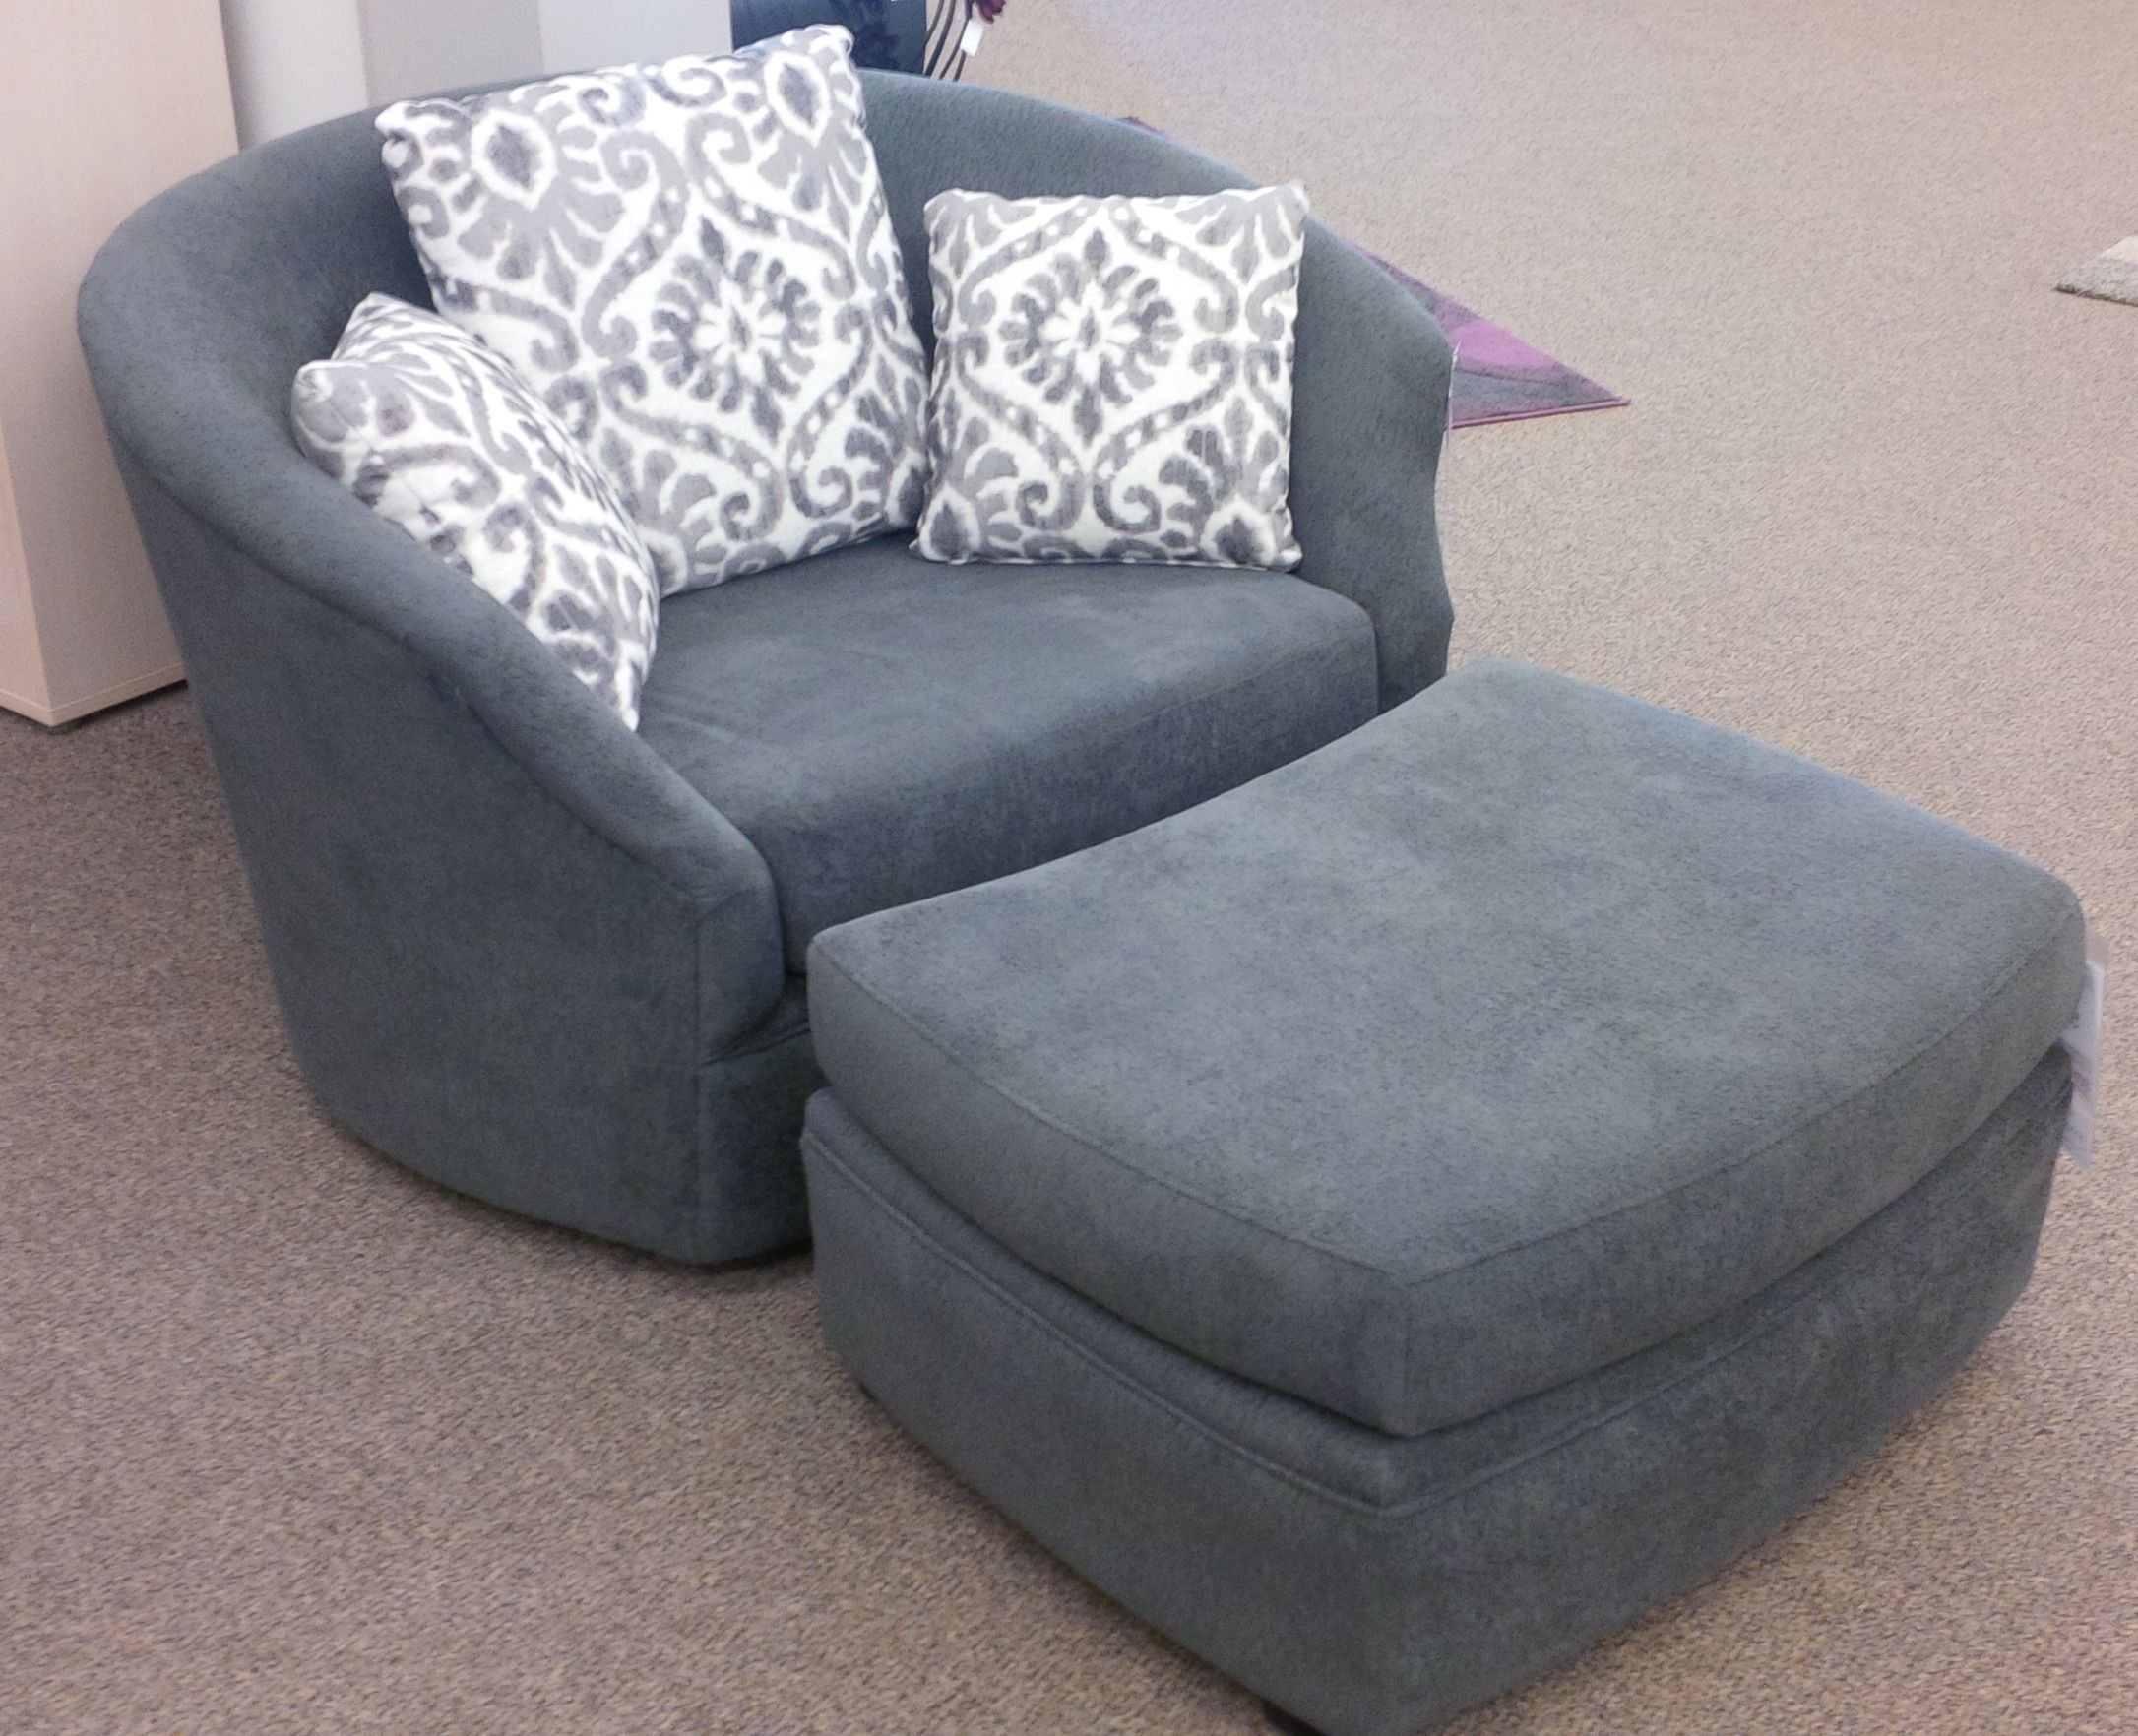 Comfy Chair With Ottoman Wouldnt You Love To Curl Up In This Big Comfy Chair Its